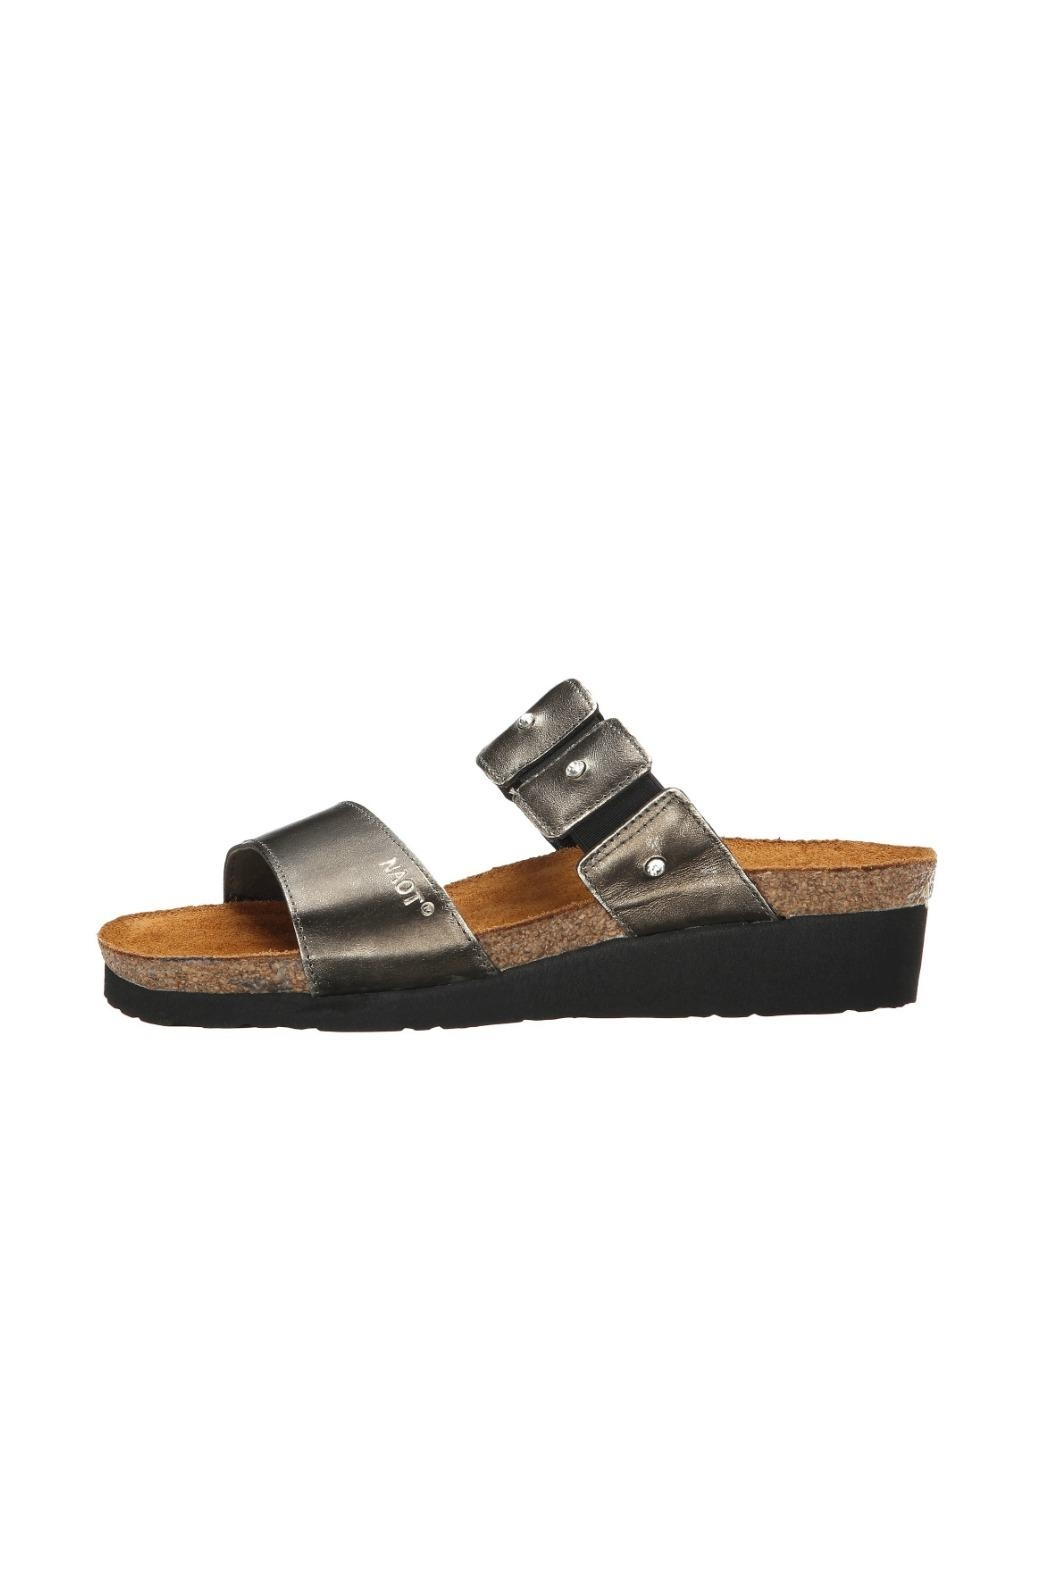 4e0ff0c62129 Naot Ashley Sandal from New Jersey by ROXY SHOES — Shoptiques